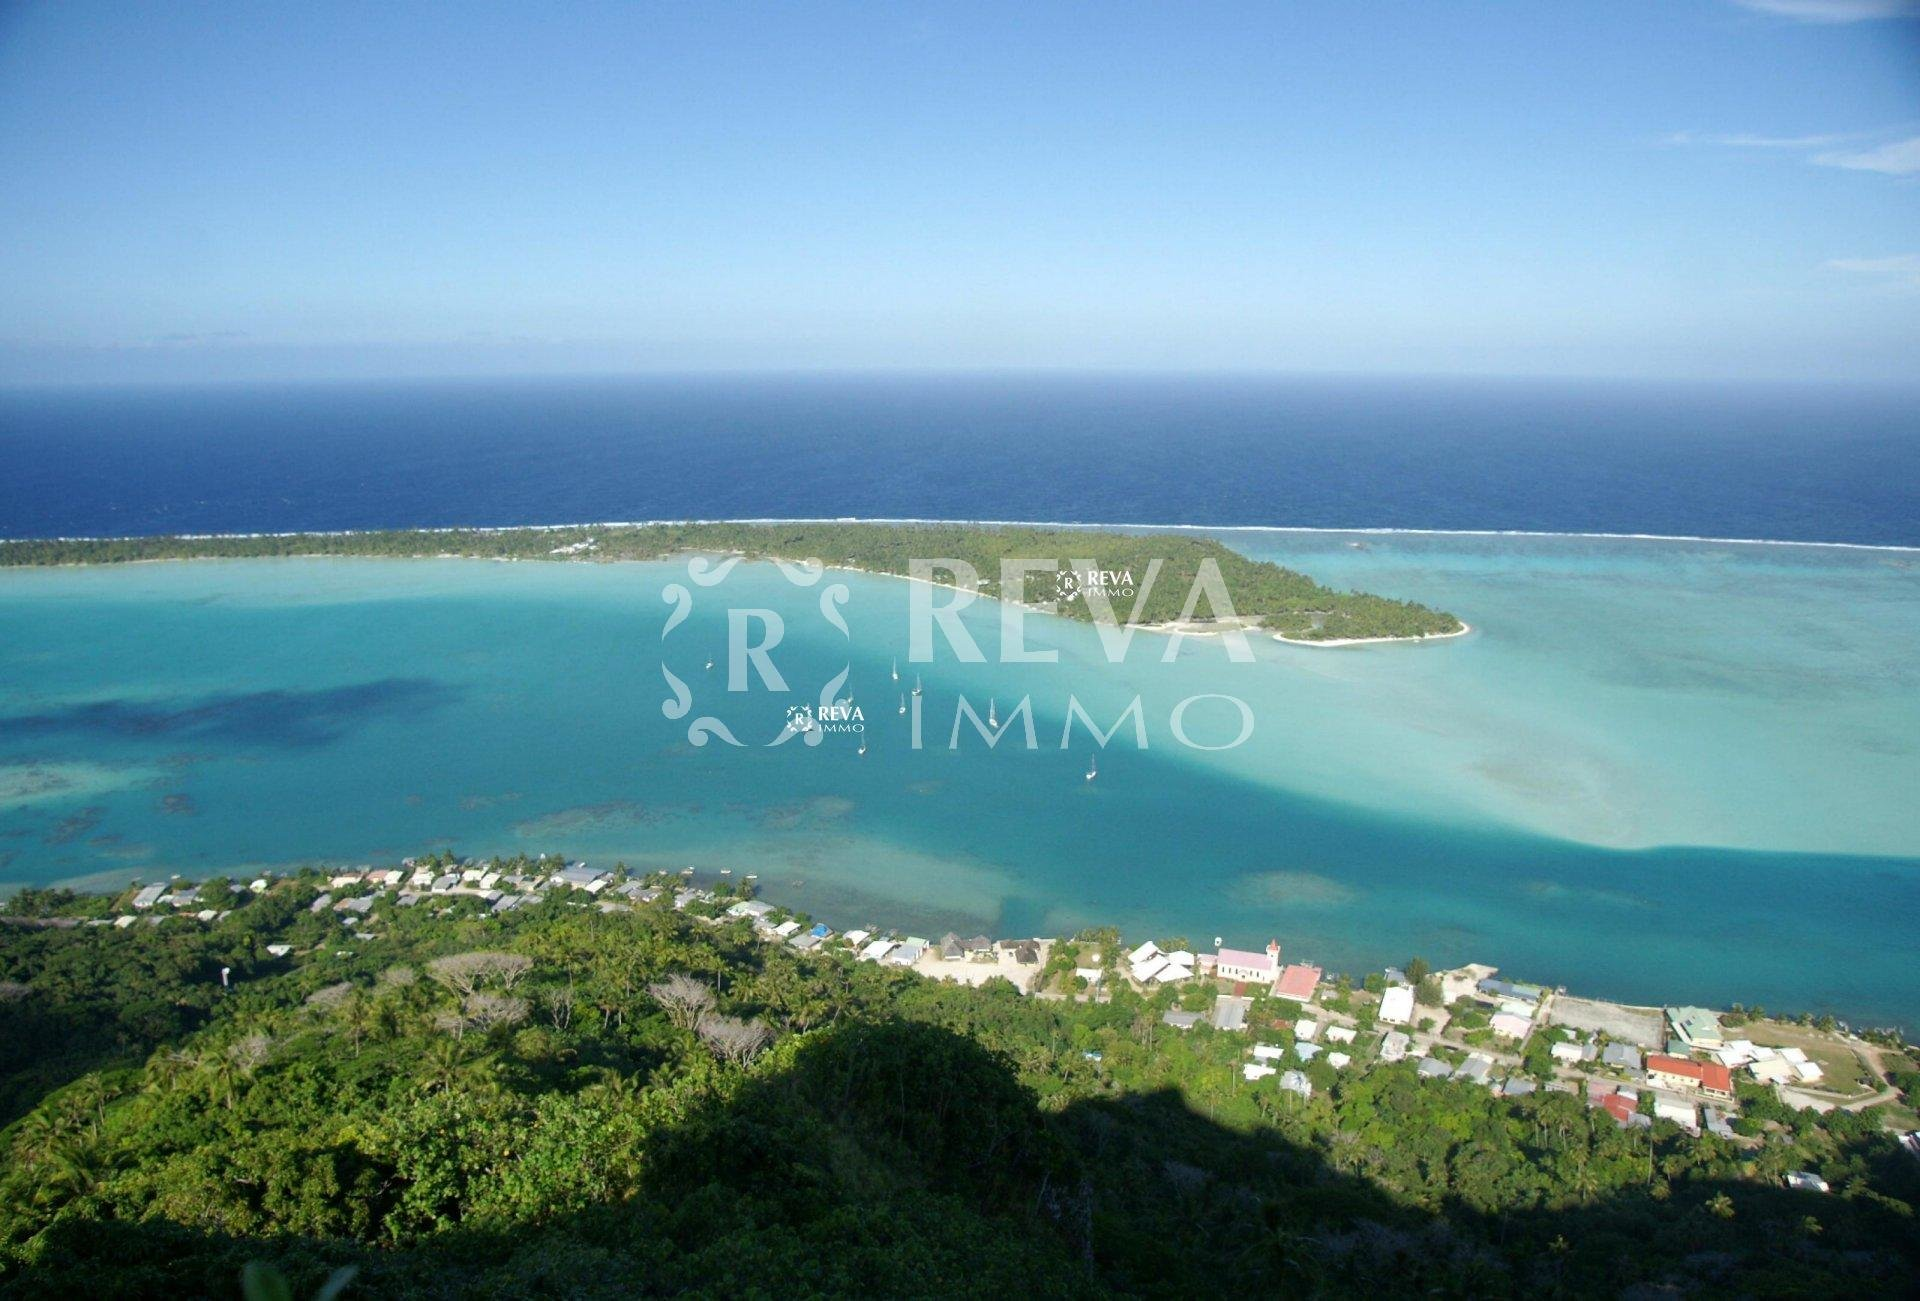 Sale Plot of land - Maupiti - French Polynesia